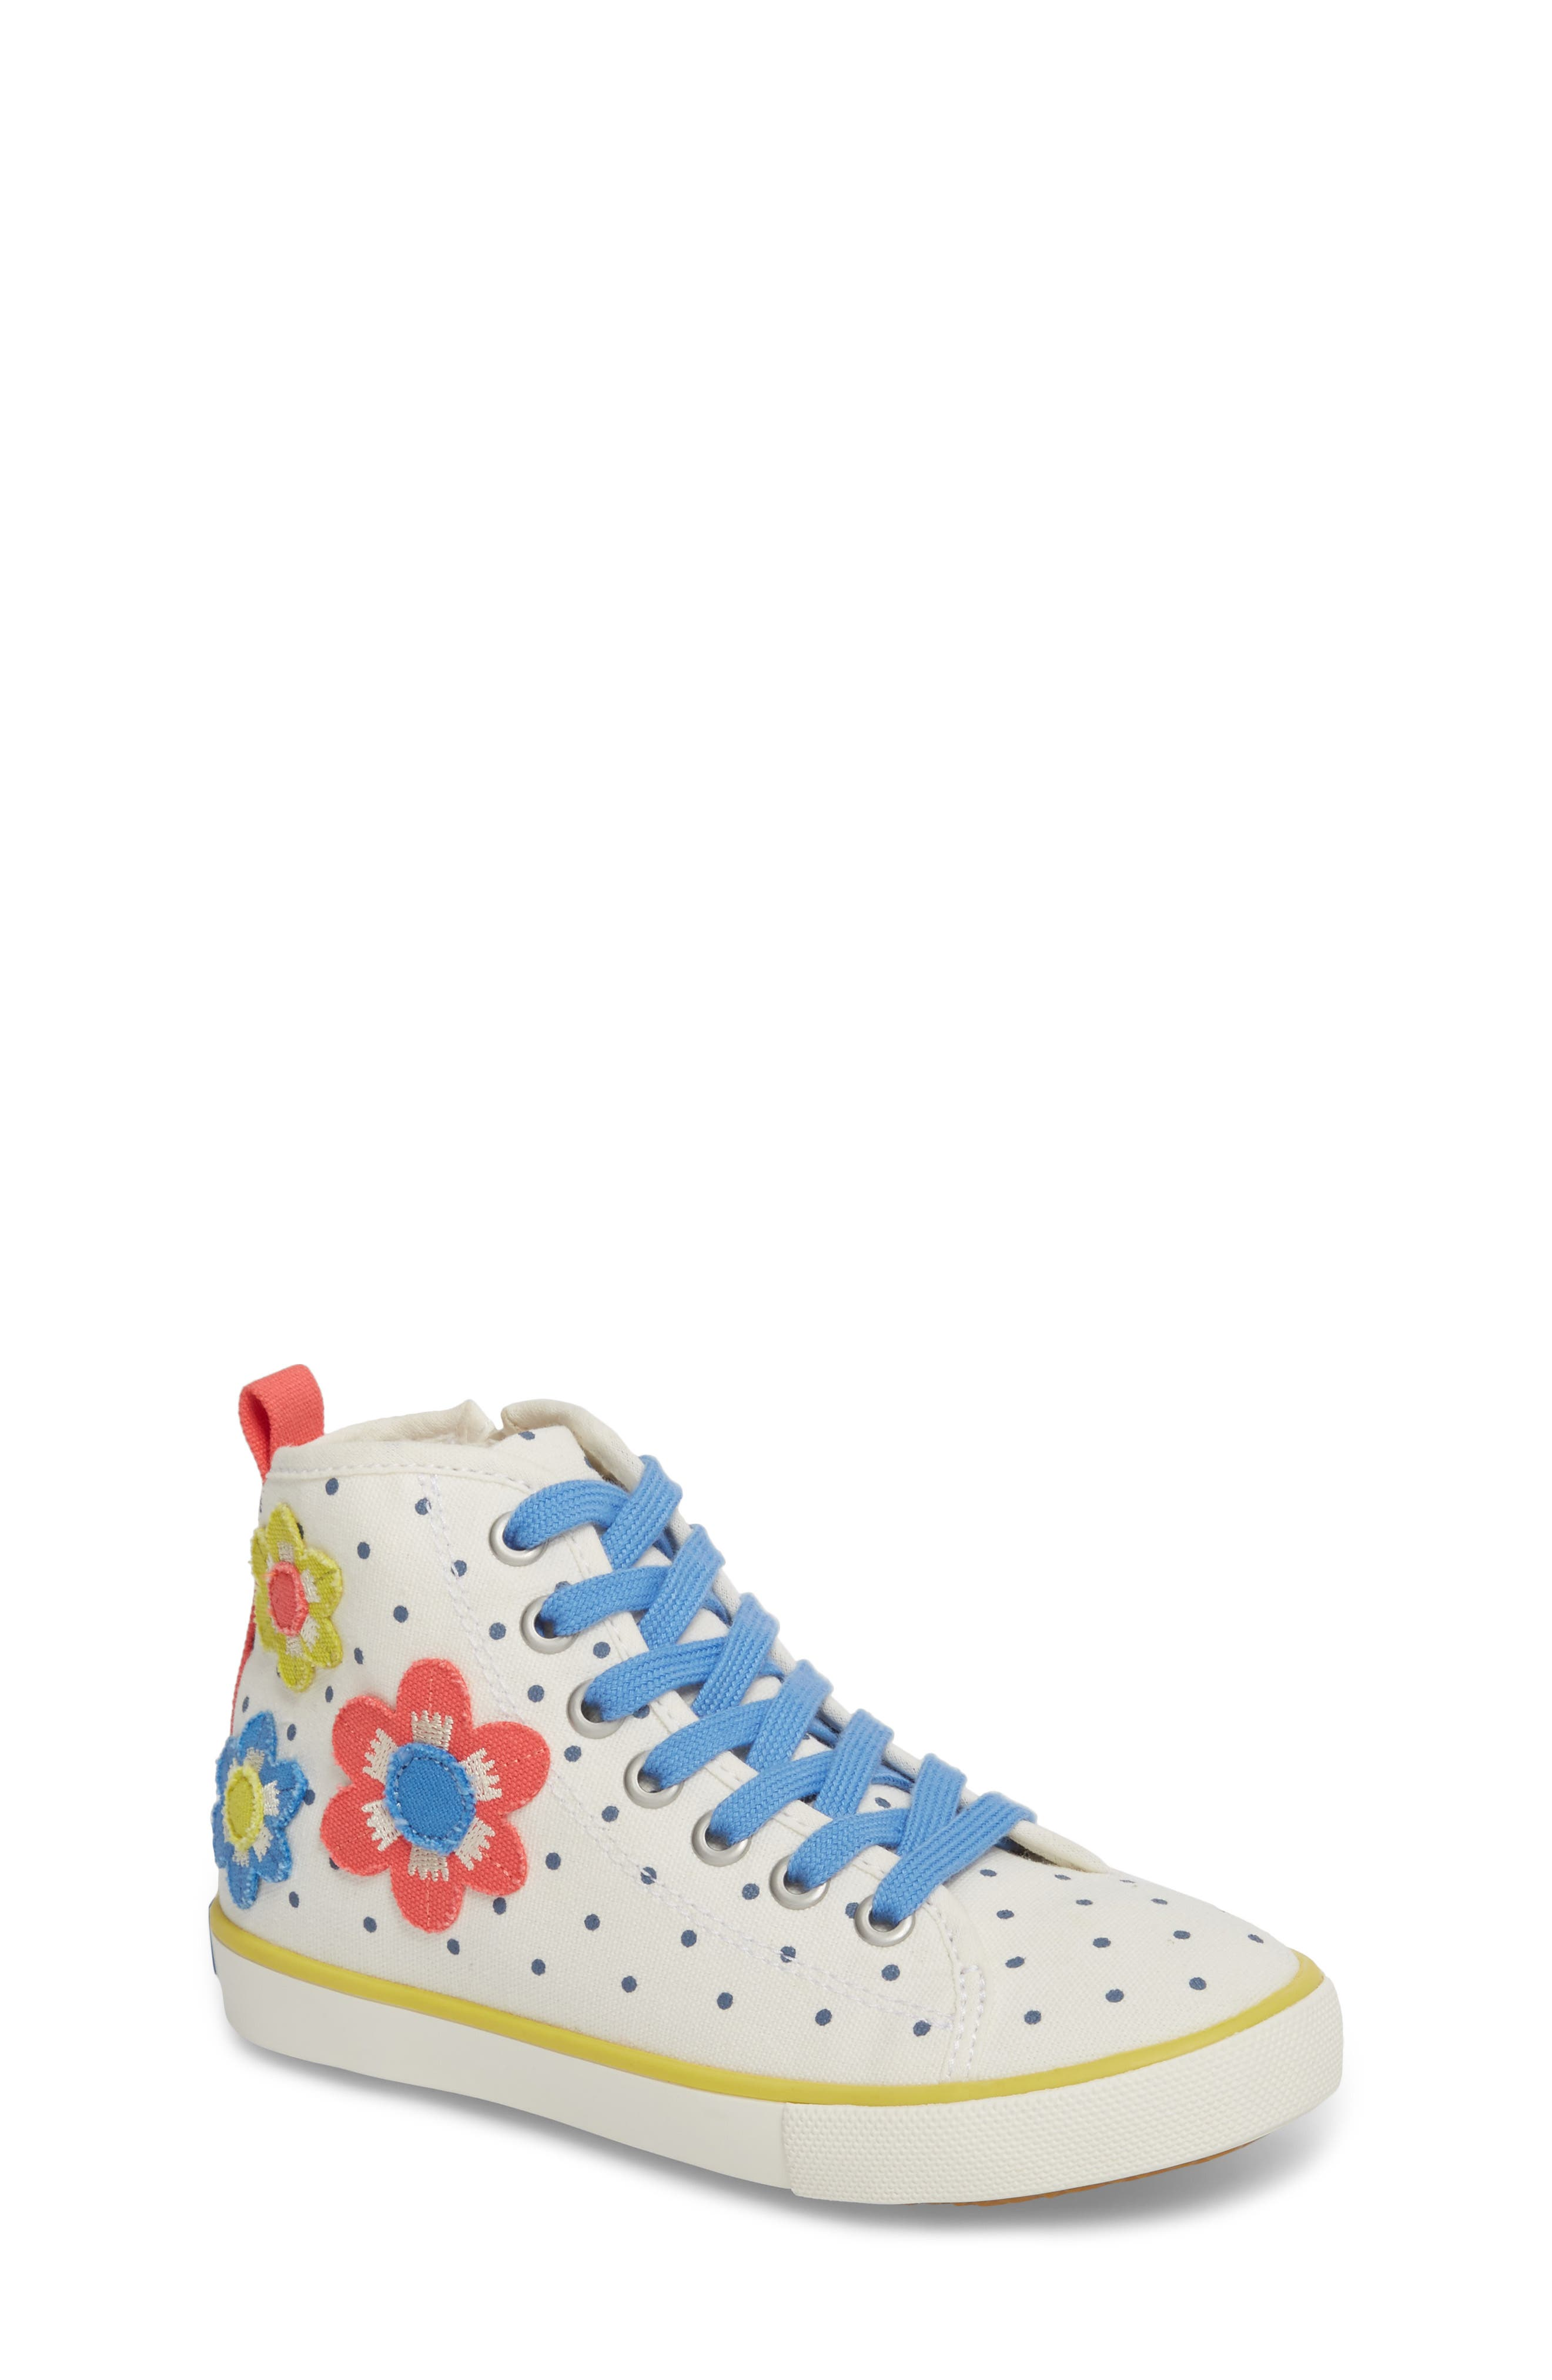 Appliqué High Top Sneaker,                         Main,                         color, Ecru Flowers